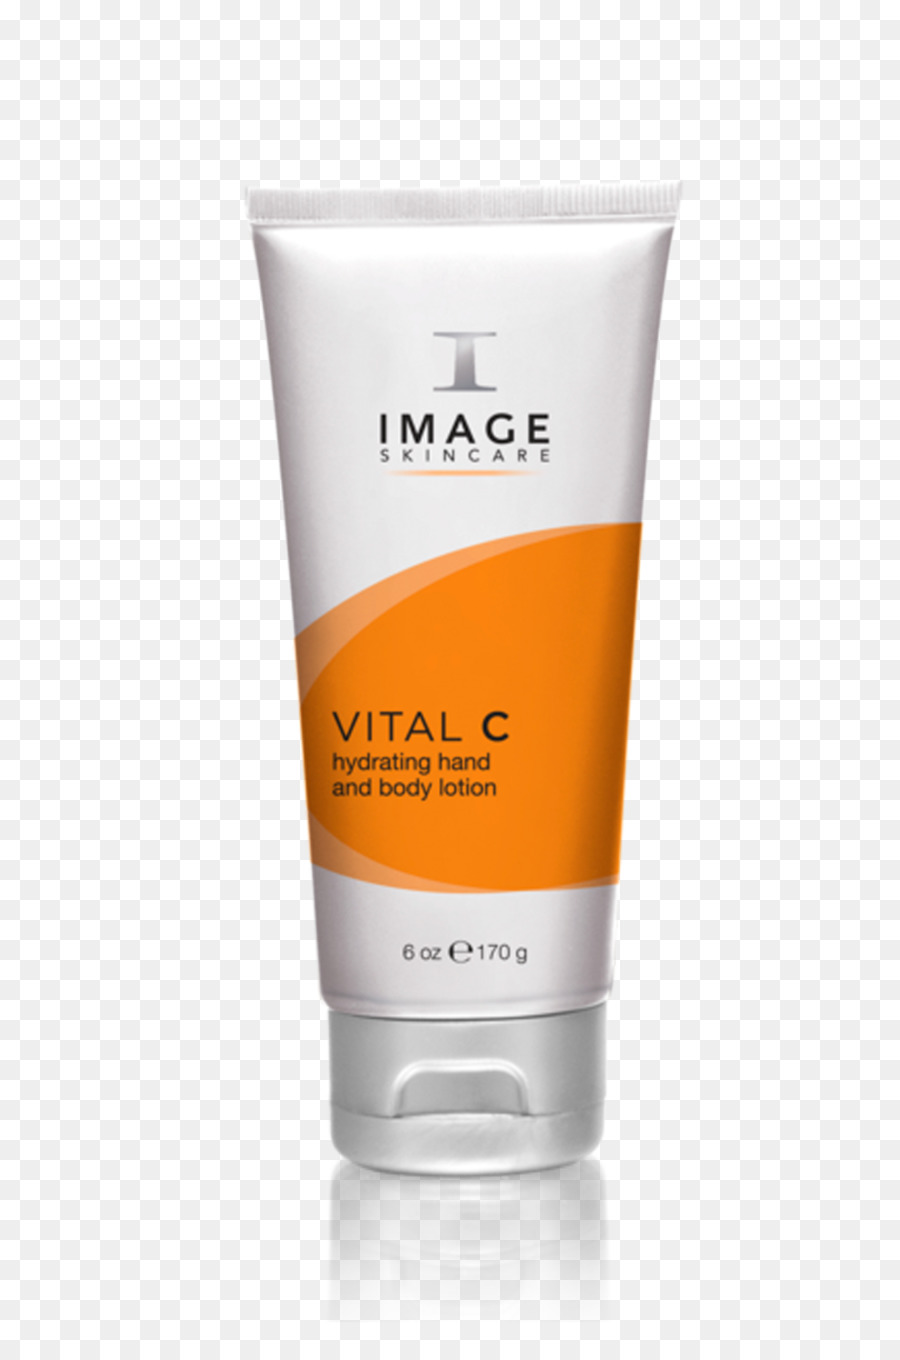 Lotion Image Skincare Vital C Hydrating Anti Aging Serum Skin Care